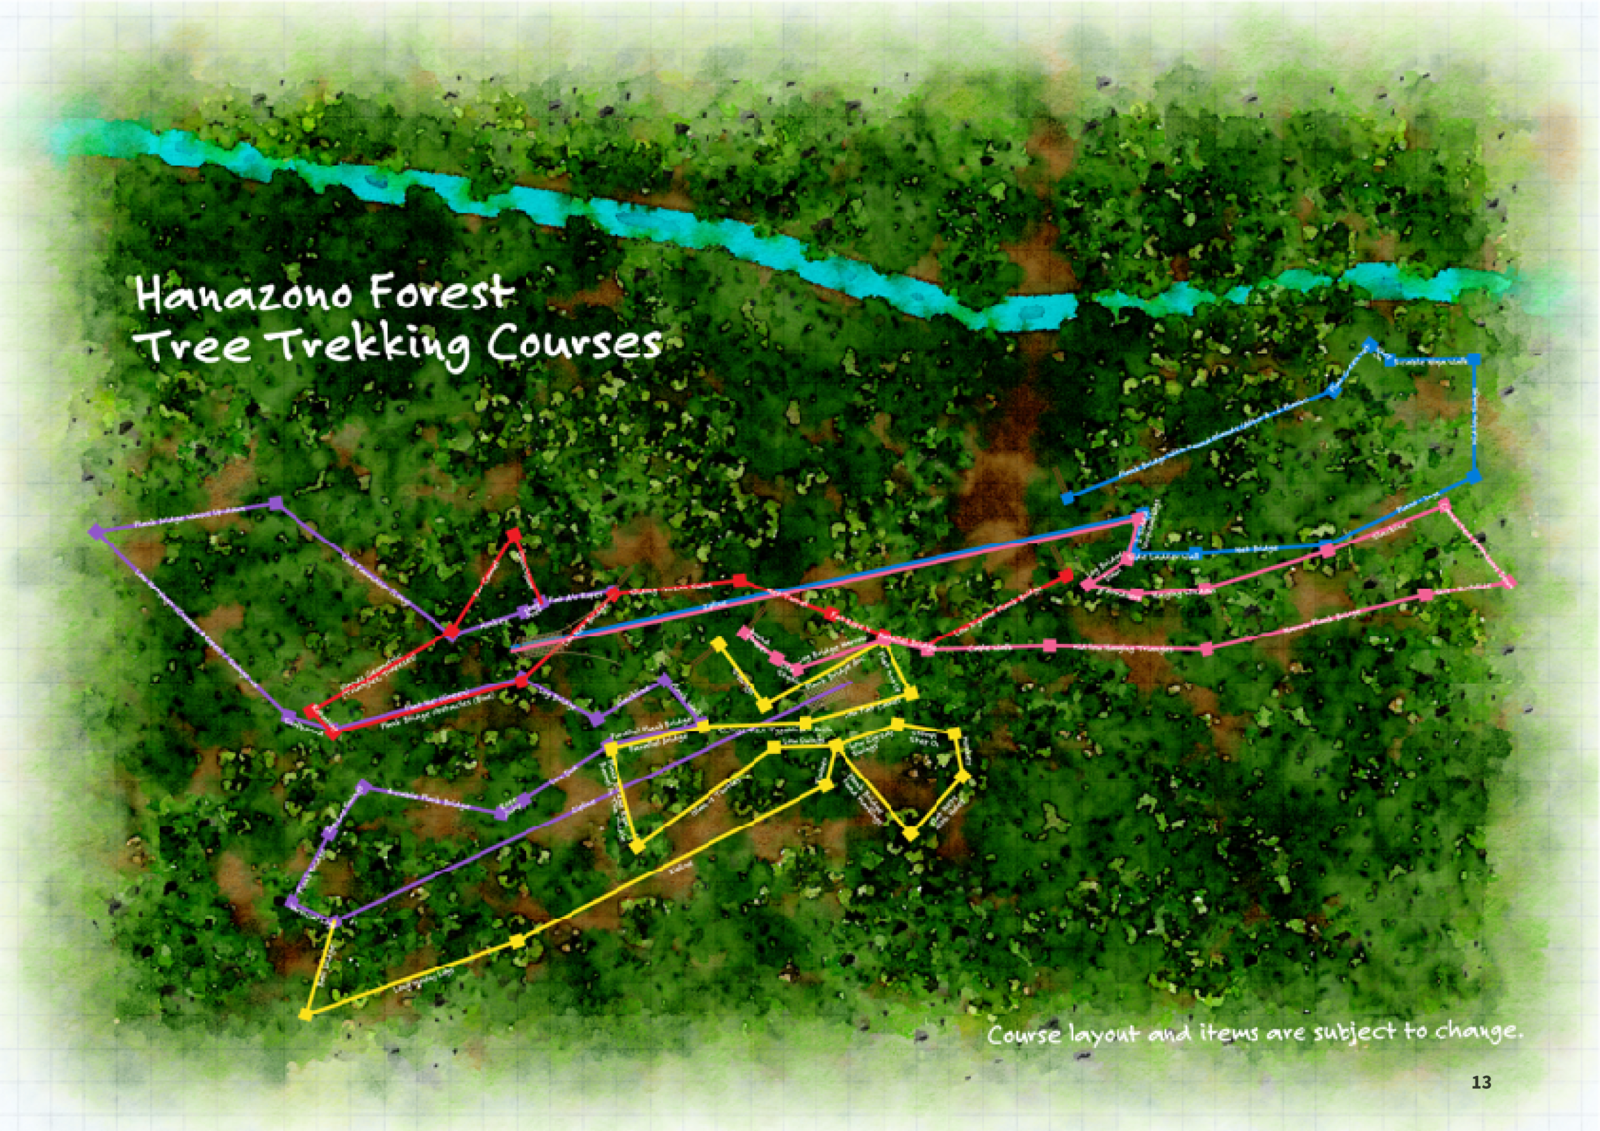 Hanazono Forest Tree Trekking course map